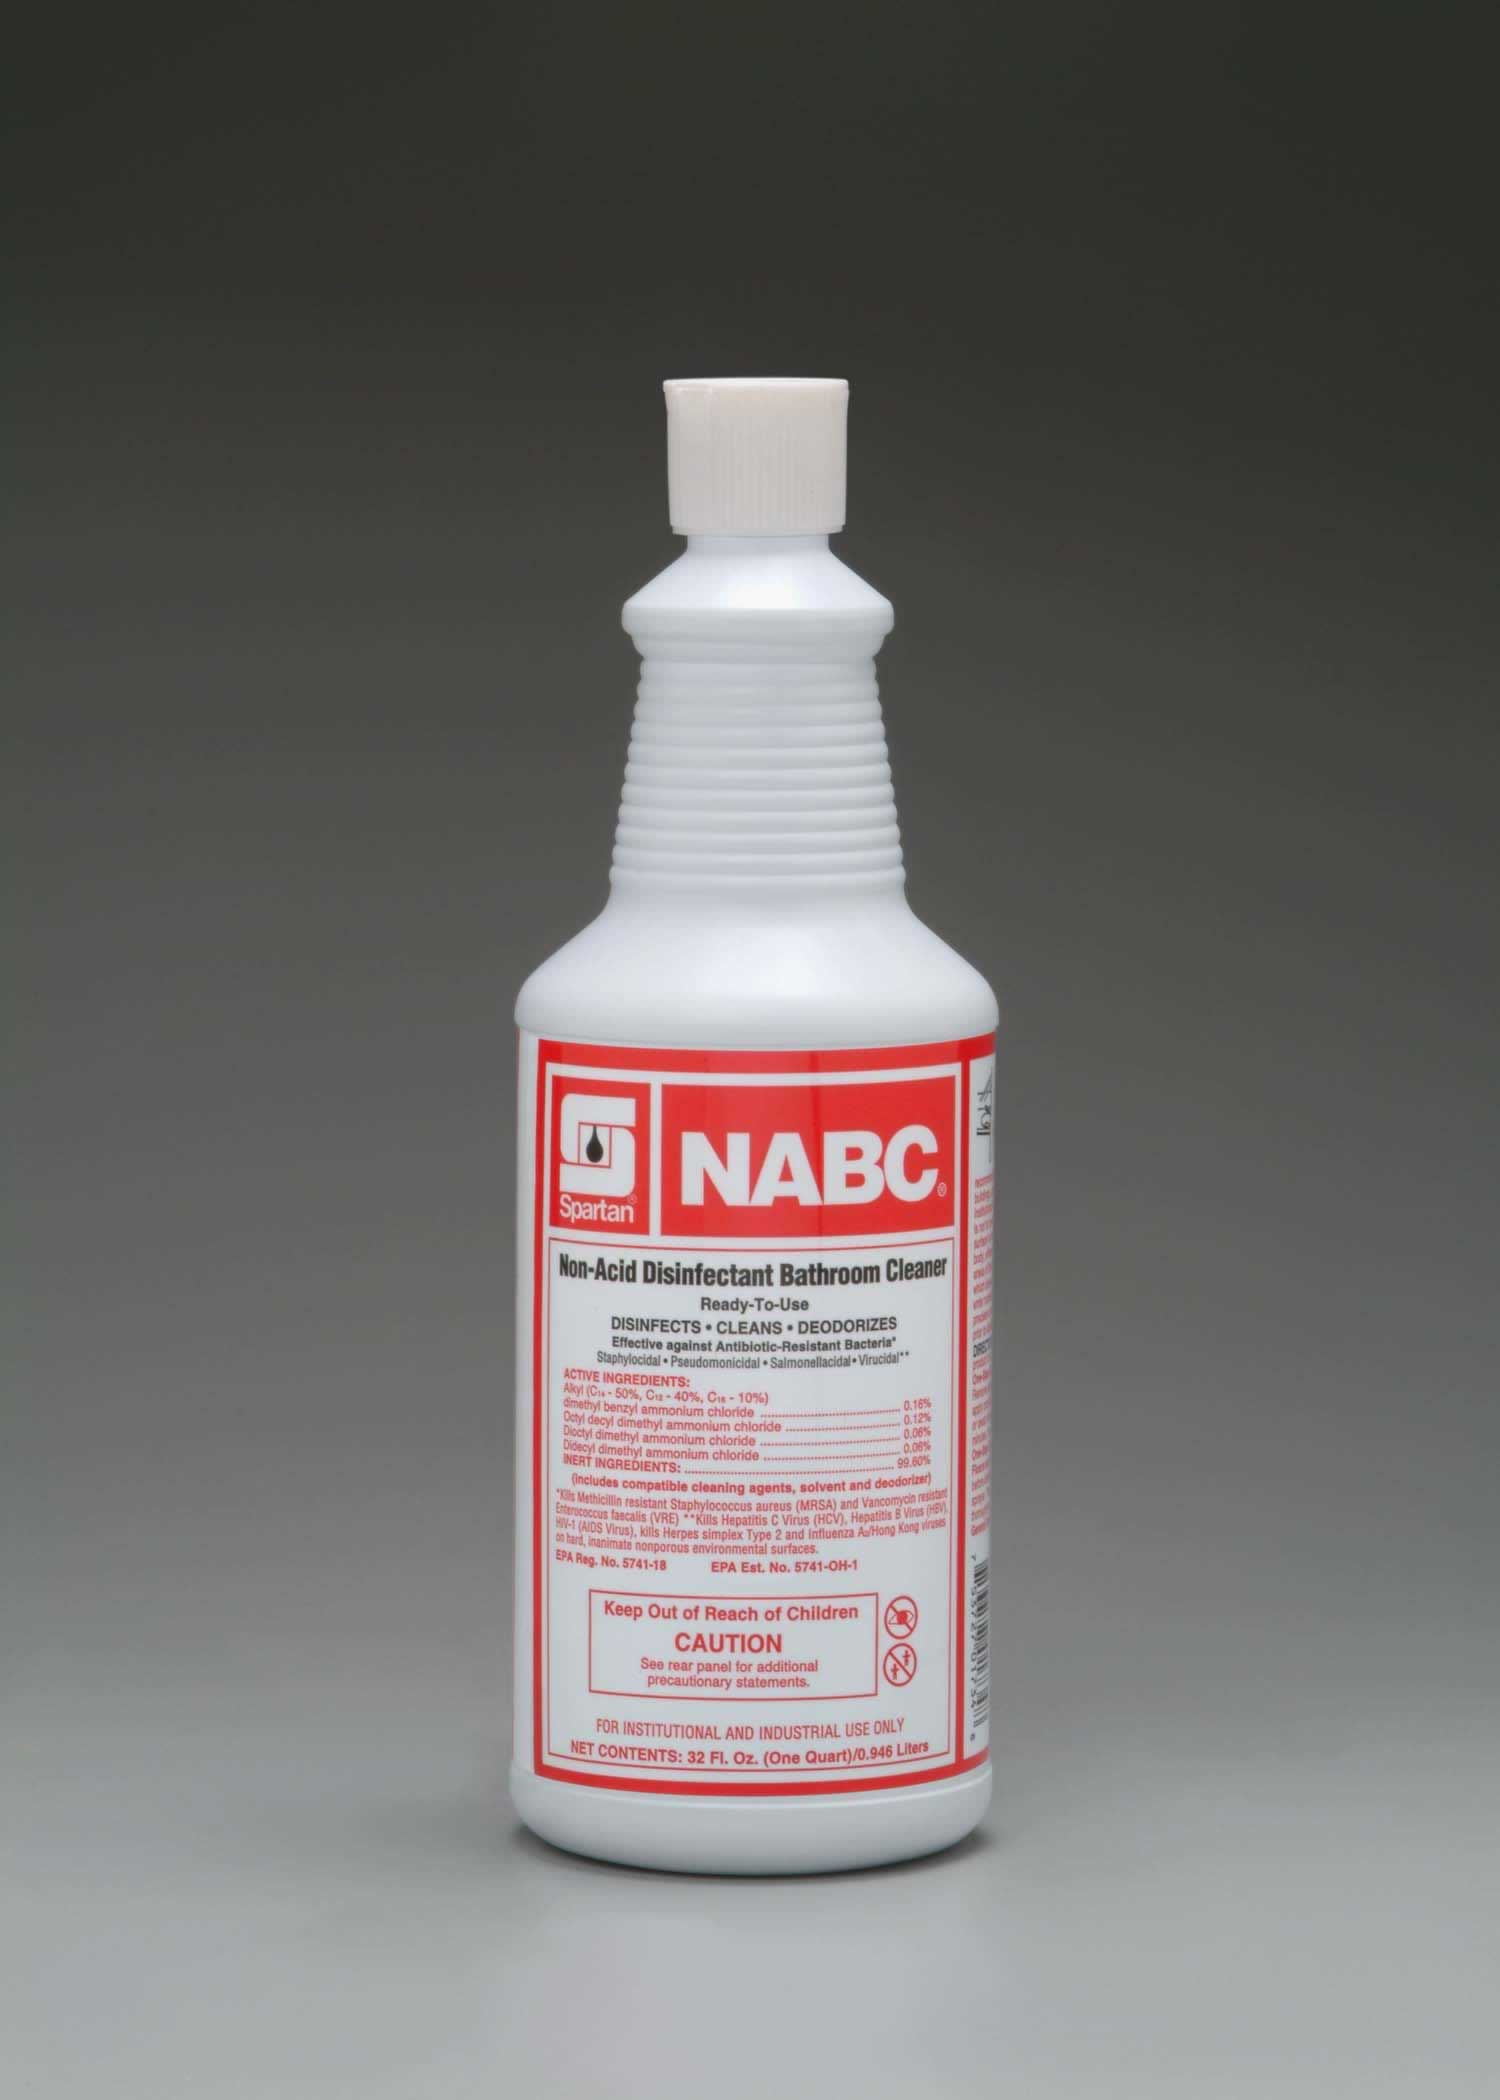 NABC non-acid disinfectant bathroom cleaner